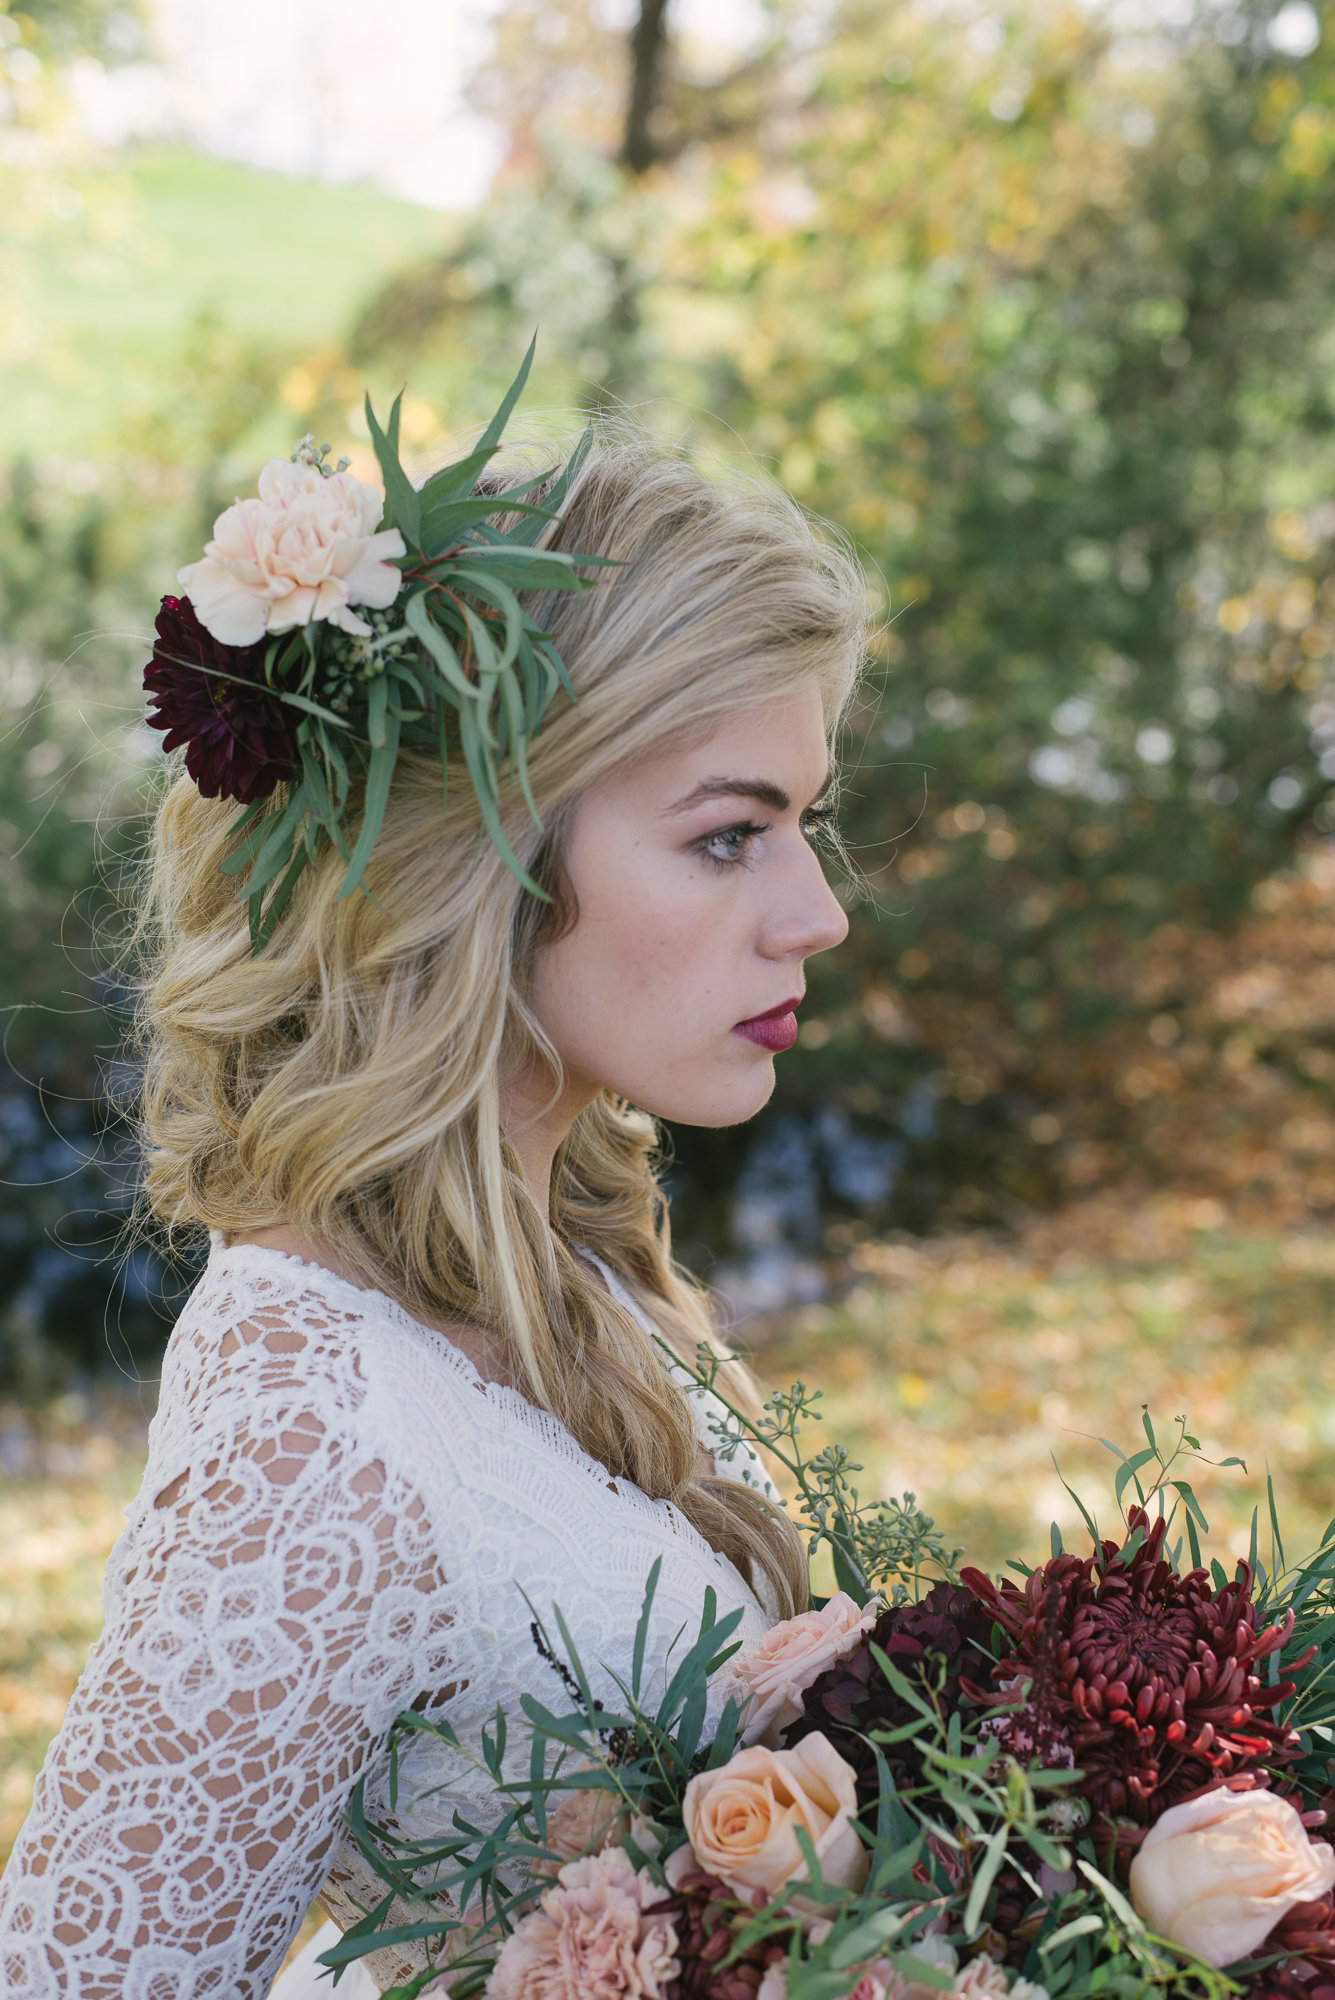 This  hair and makeup  was so stunning!! Wow! We loved it! Flowers in the brides hair is such a beautiful touch!